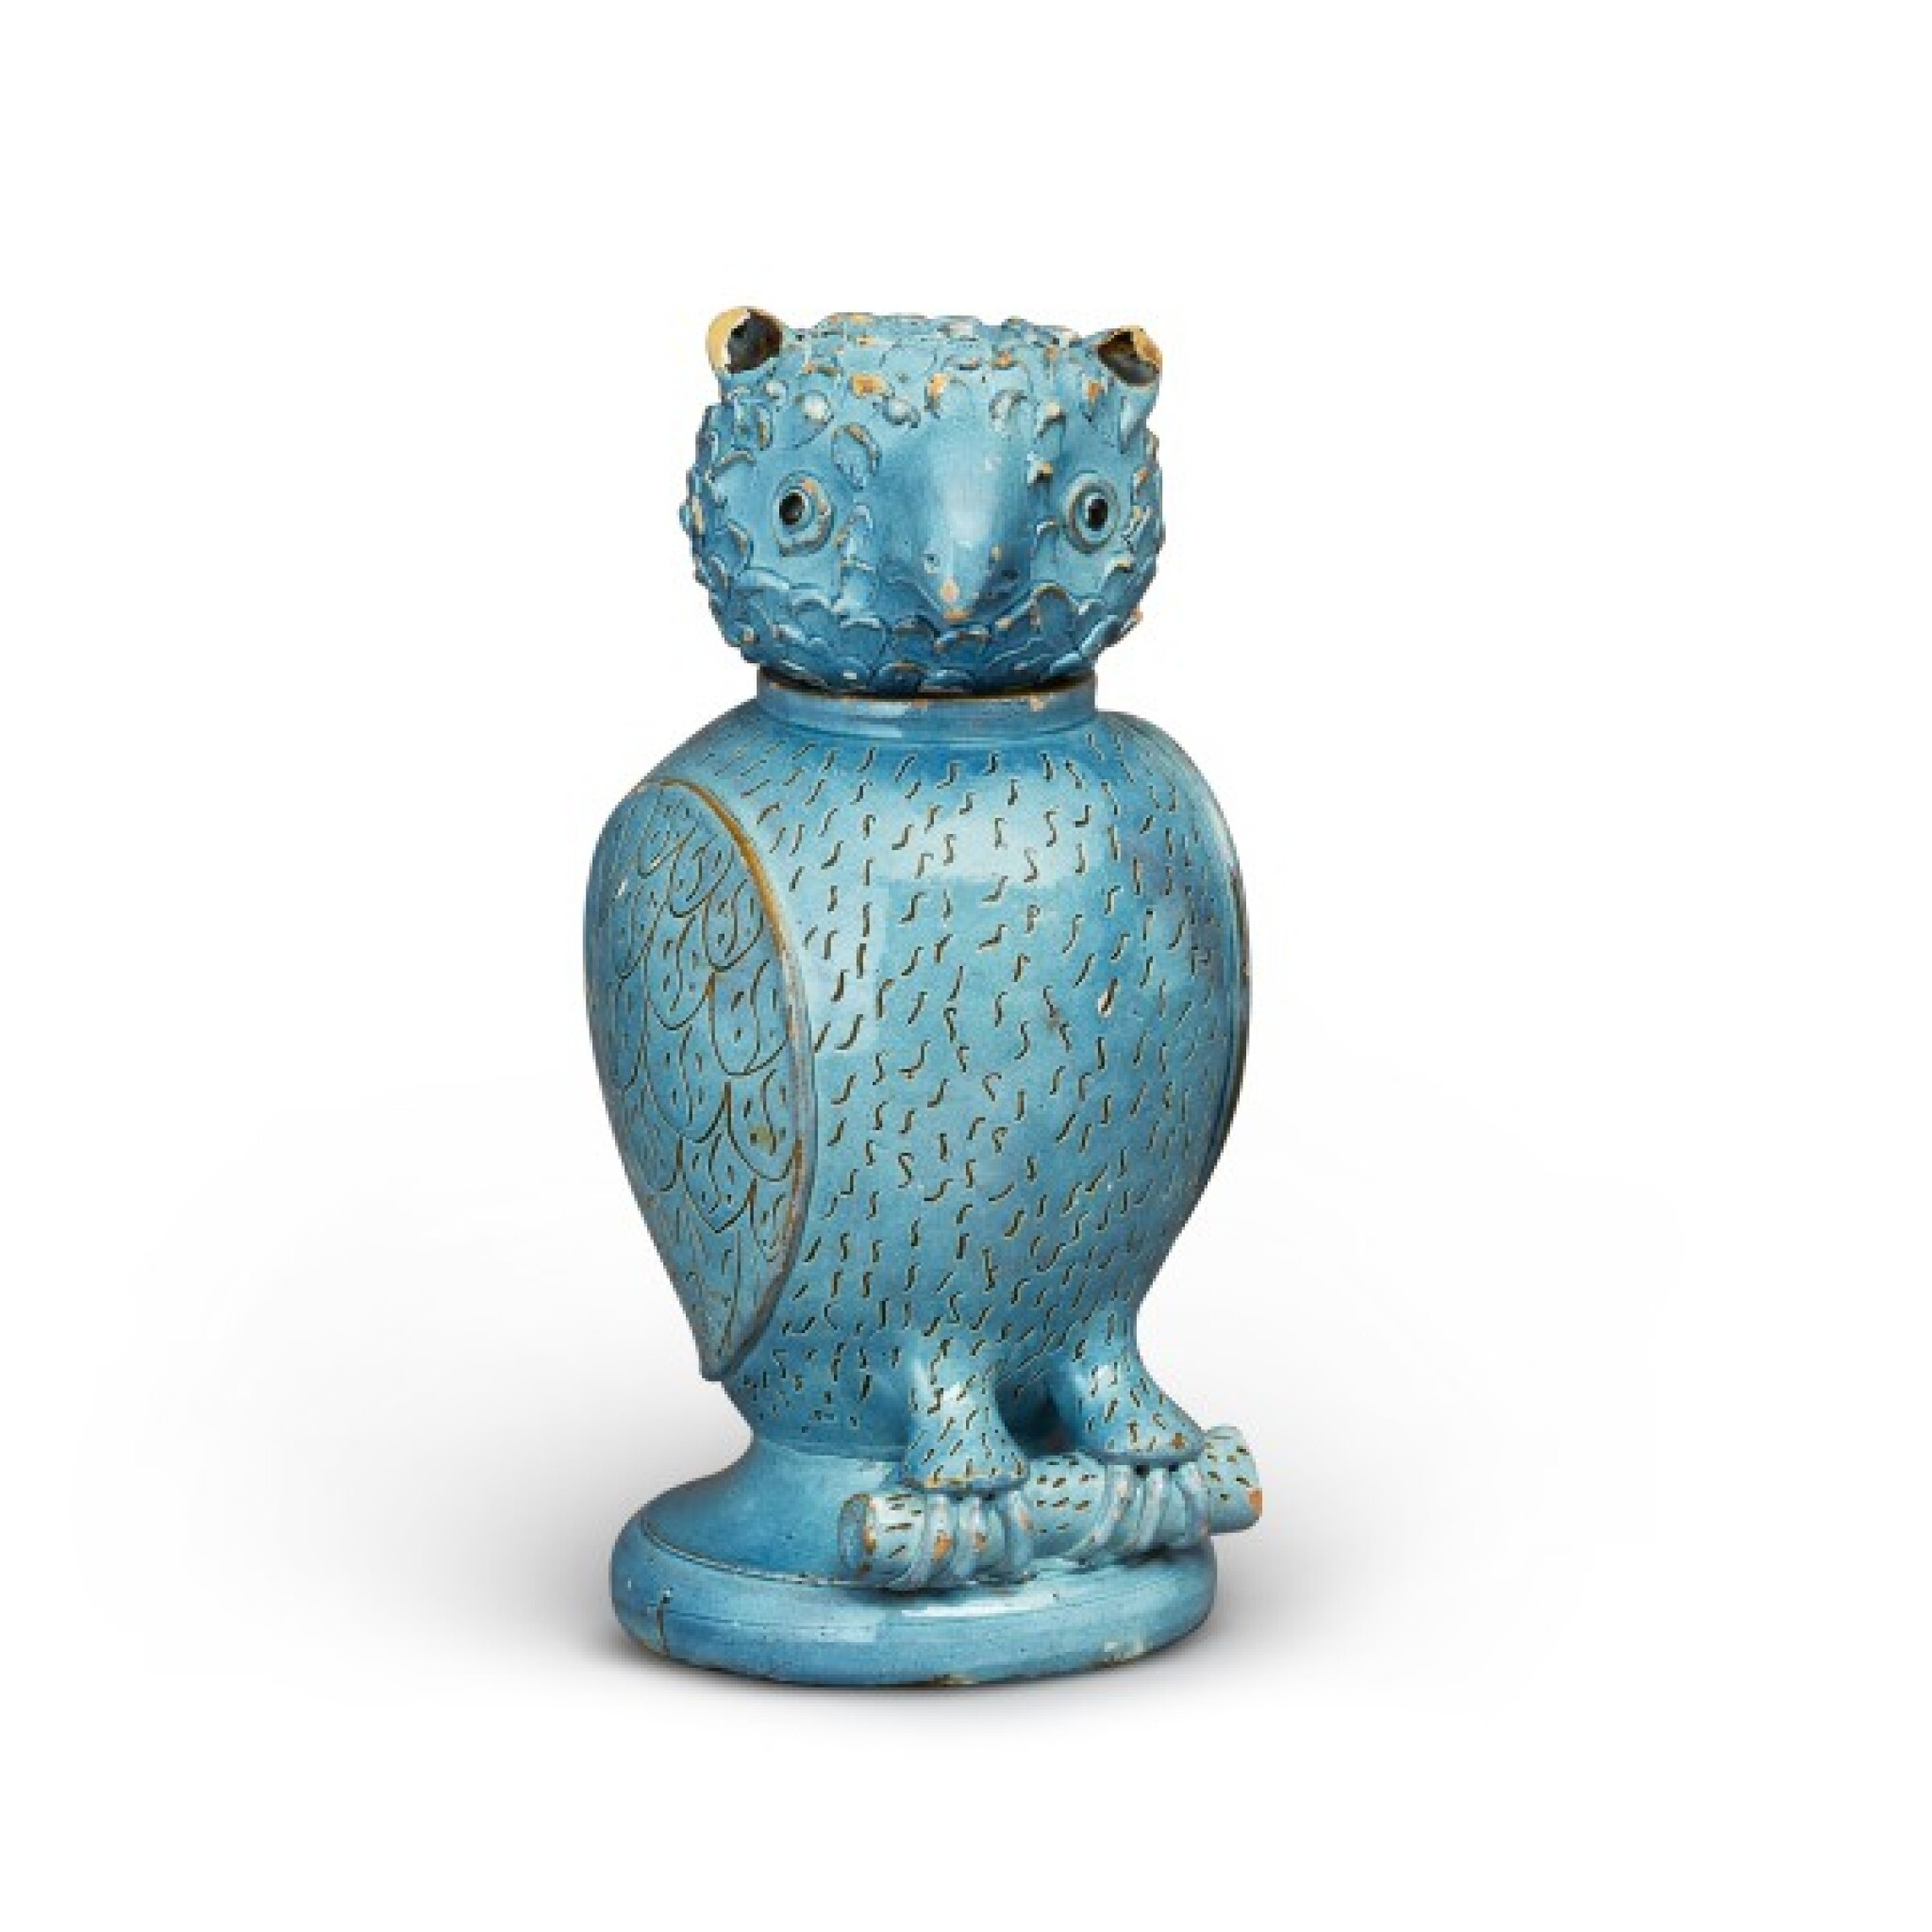 View full screen - View 1 of Lot 21. Staffordshire, England, 19th century | Lidded Vessel in the form of an Owl.